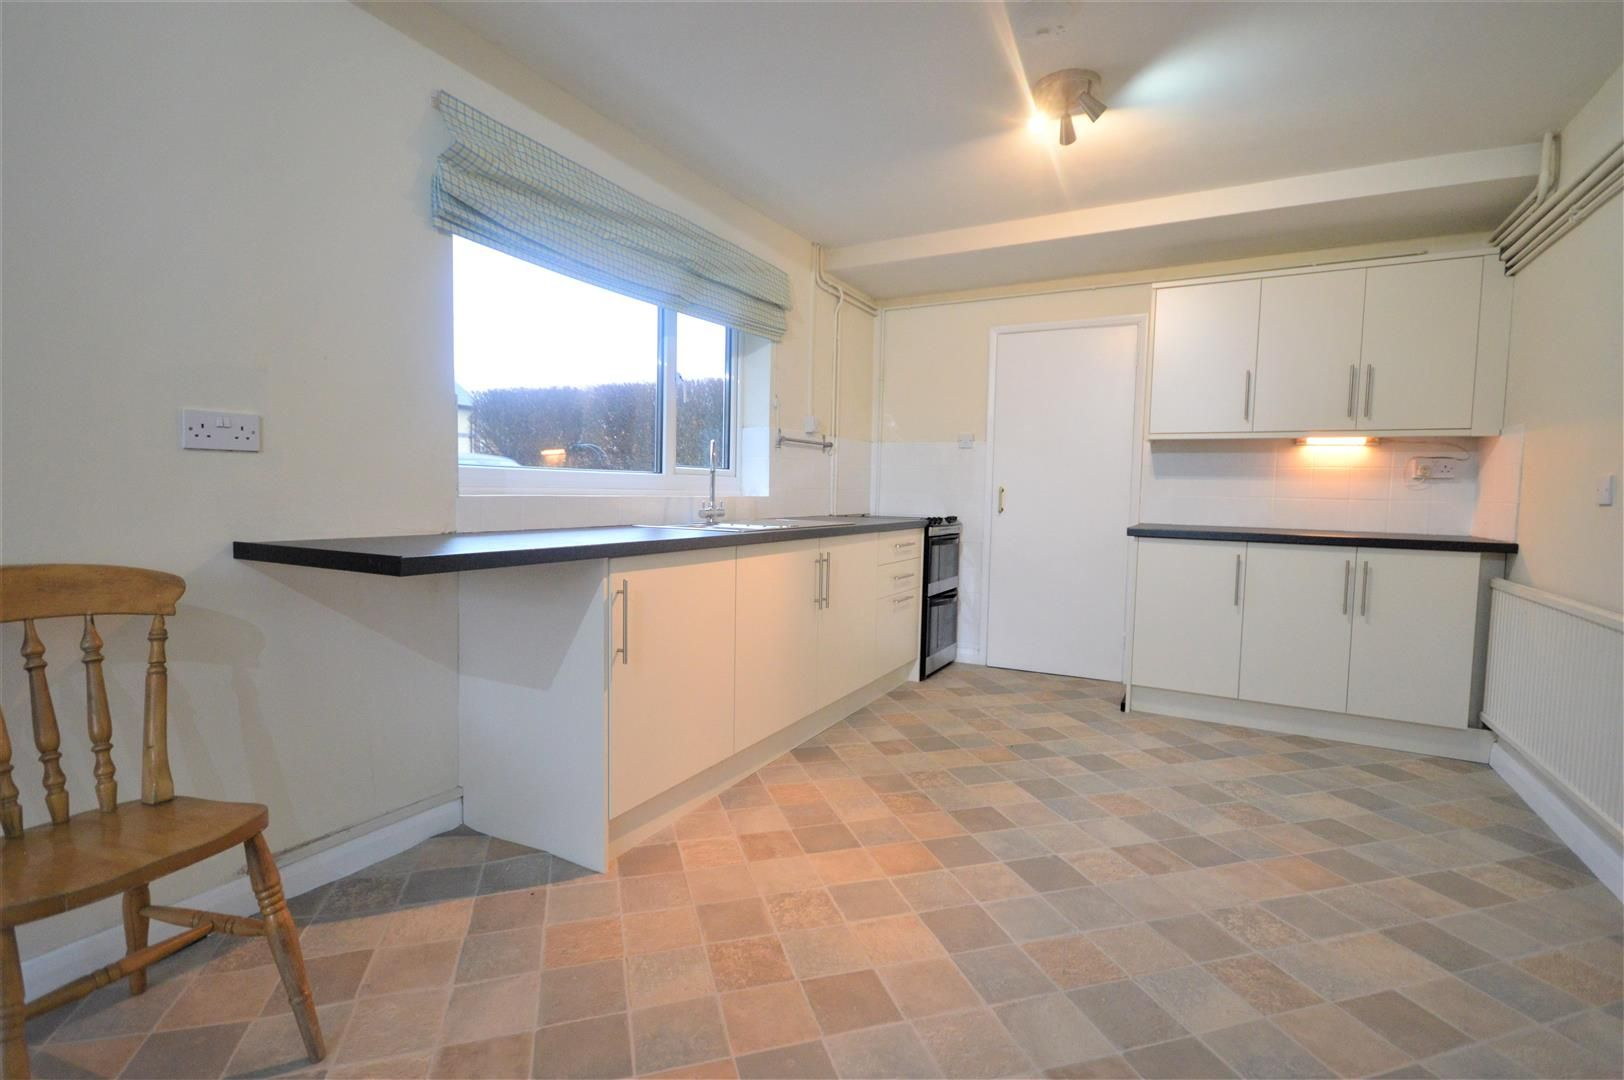 4 bed detached to rent in Kingsland 4